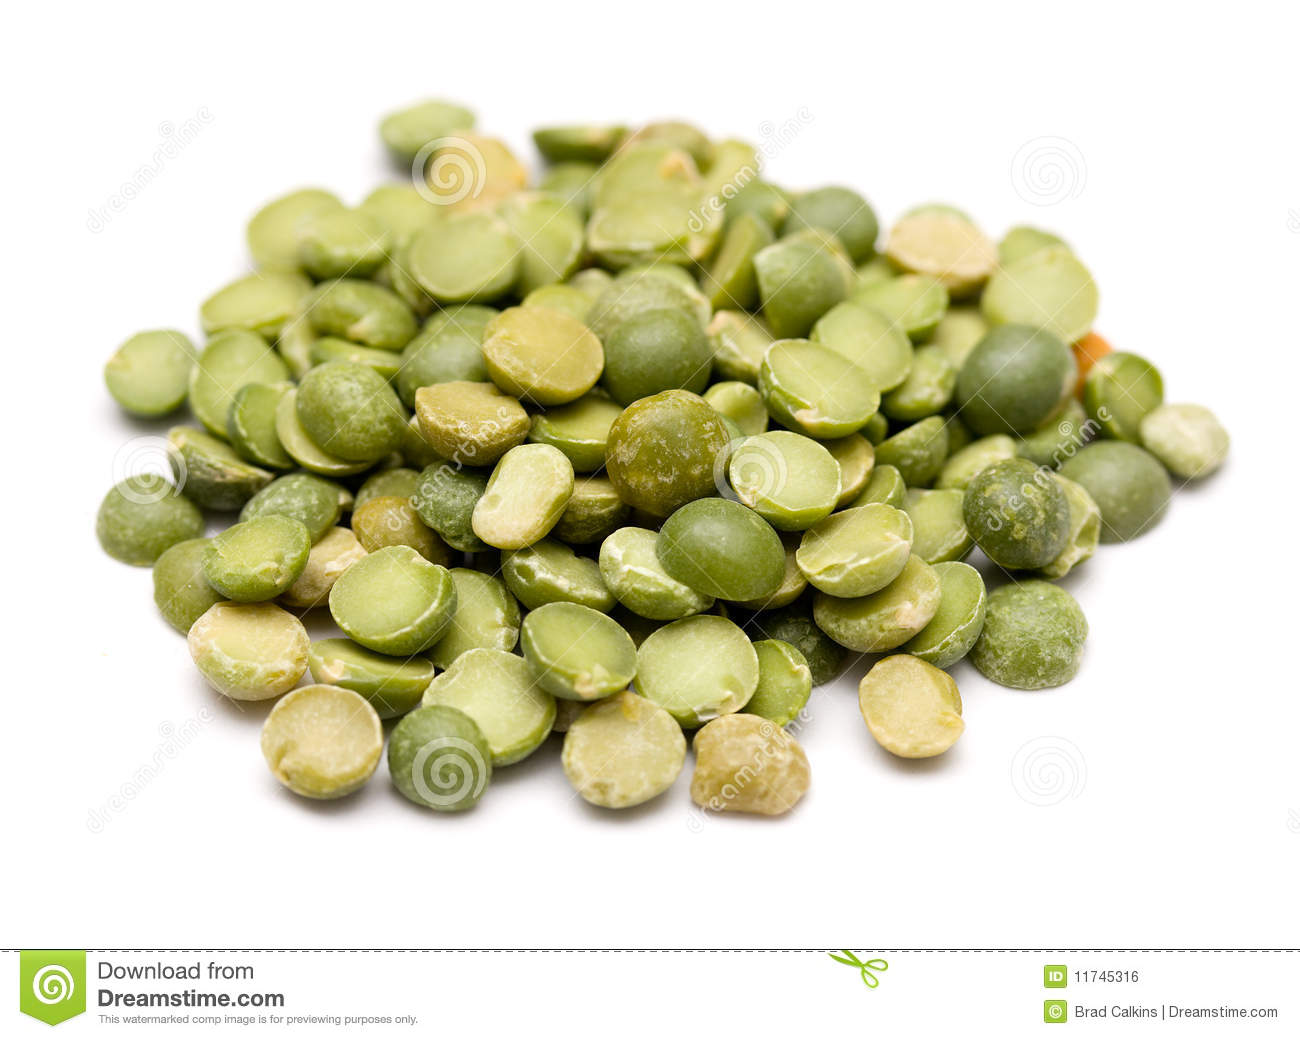 how to cook dried yellow split peas